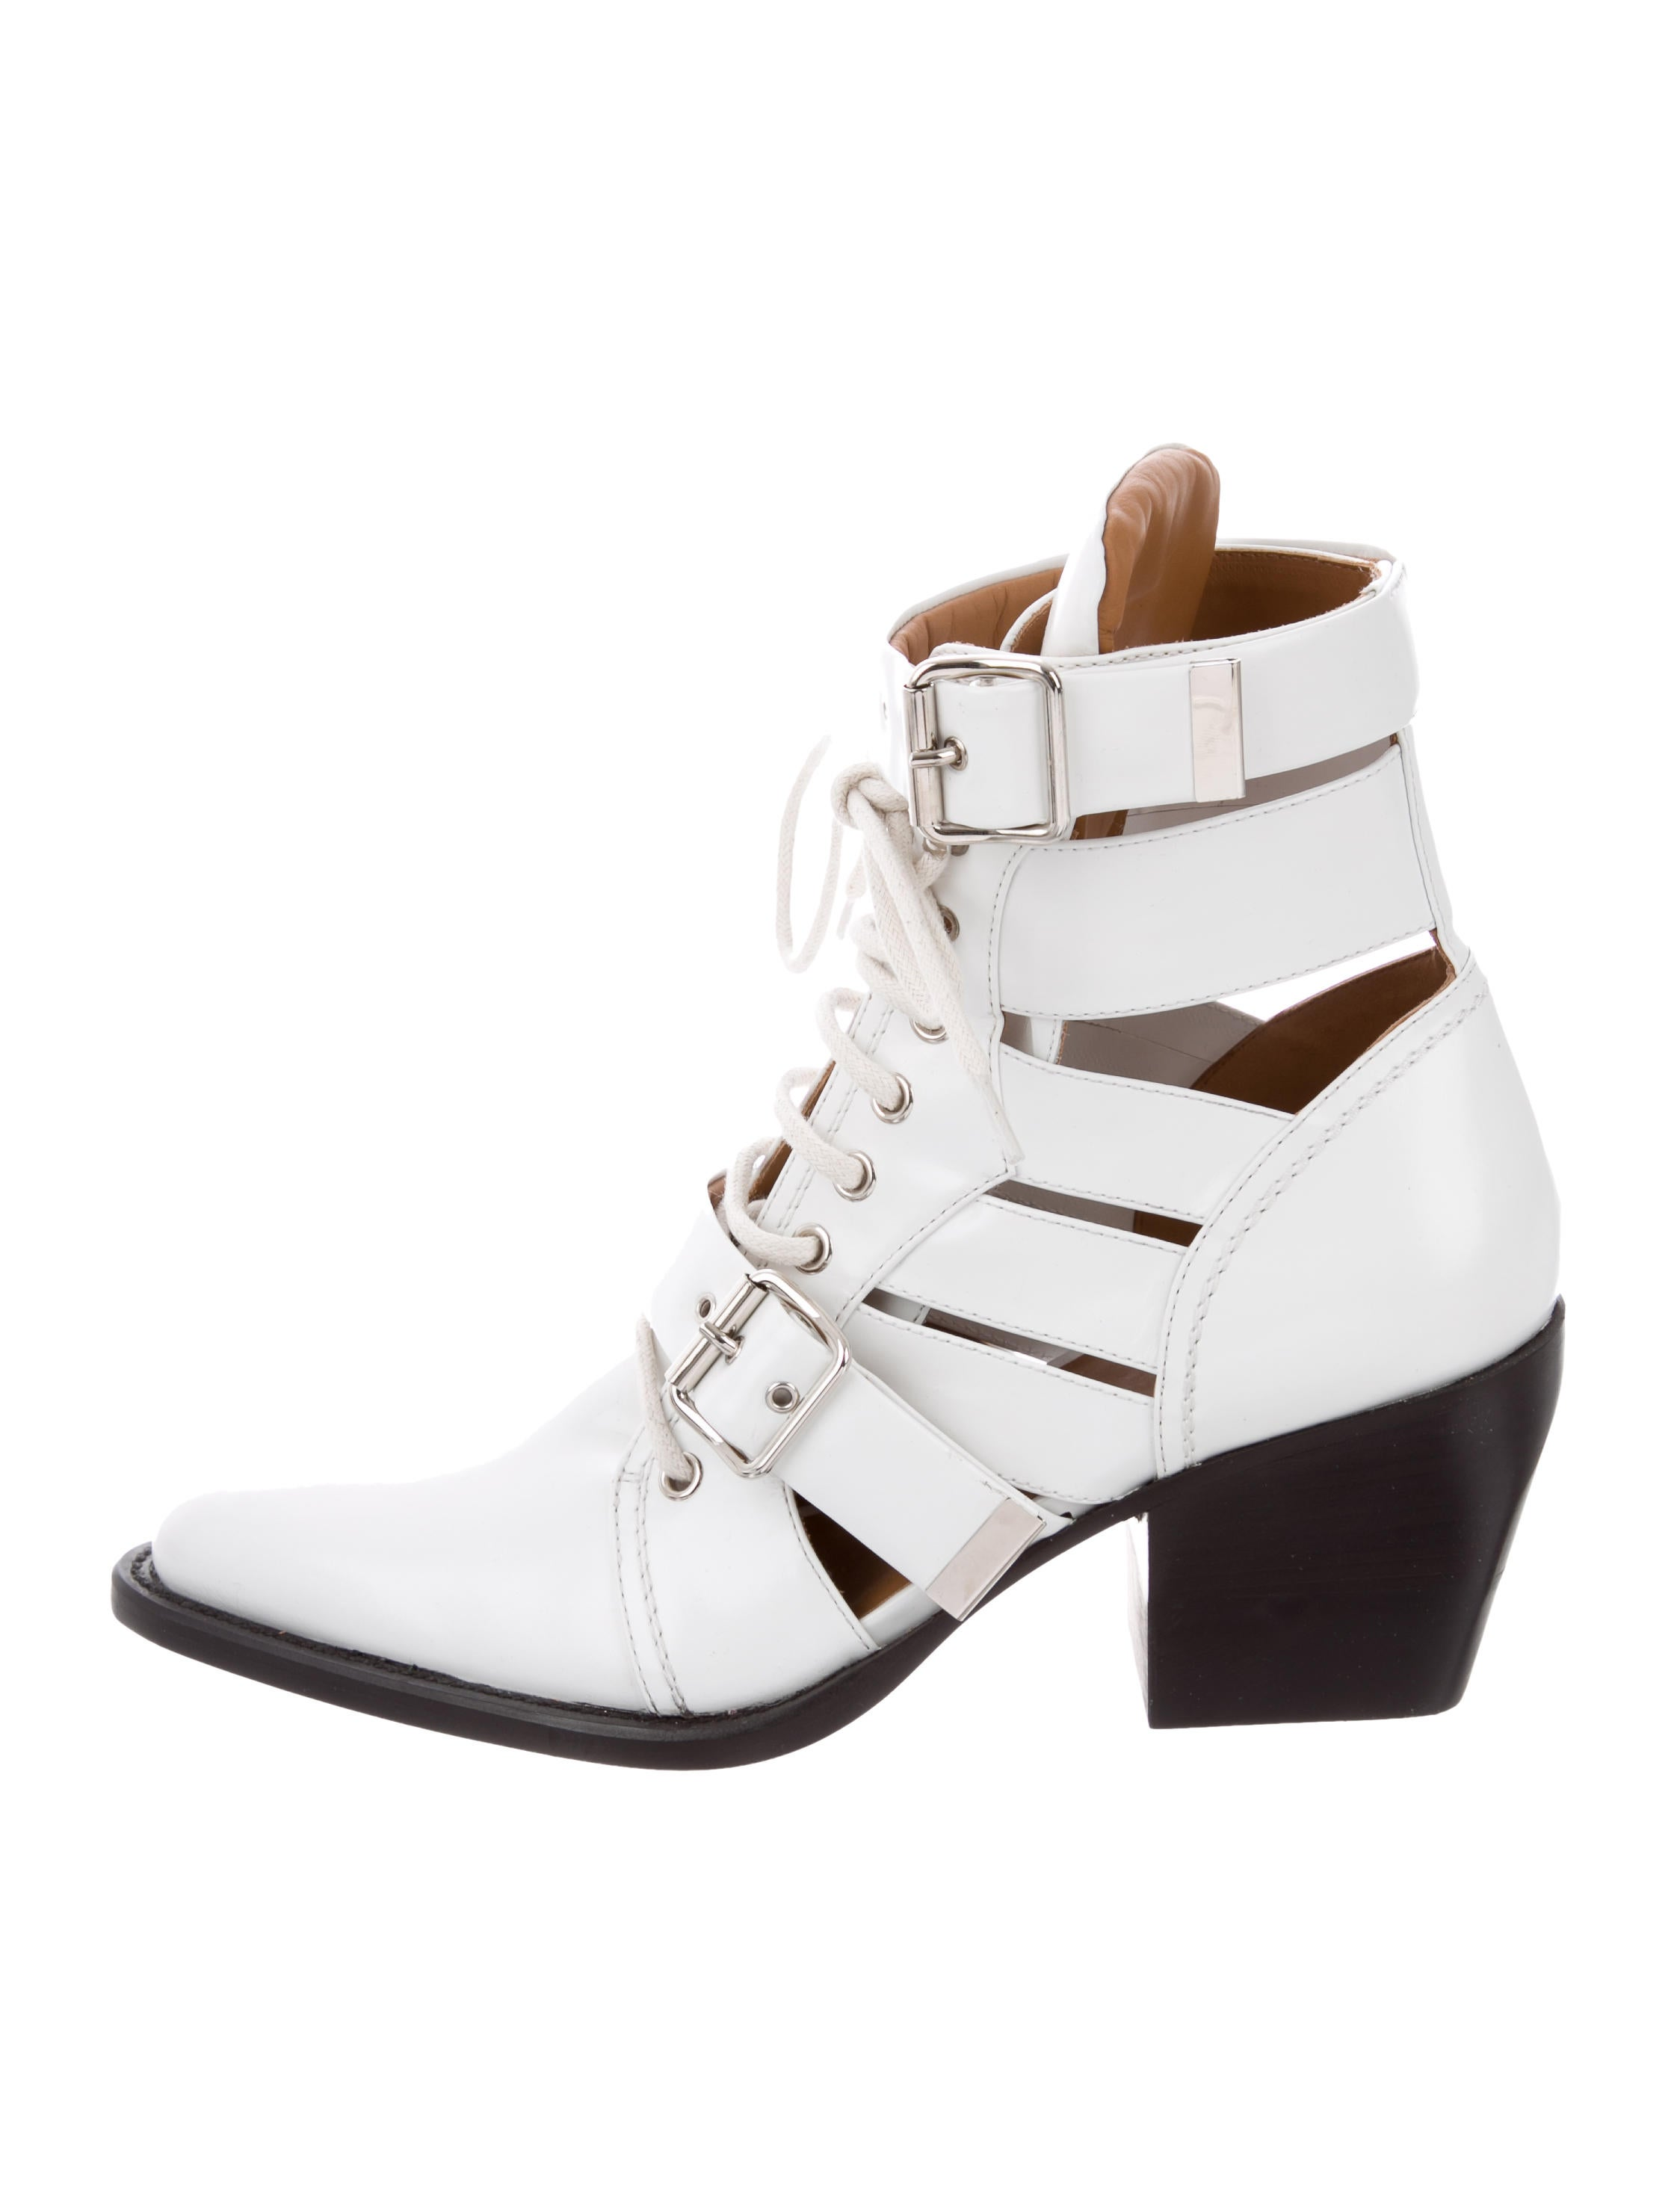 dbe92864dcf6 Chloé Rylee Ankle Boots - Shoes - CHL72388